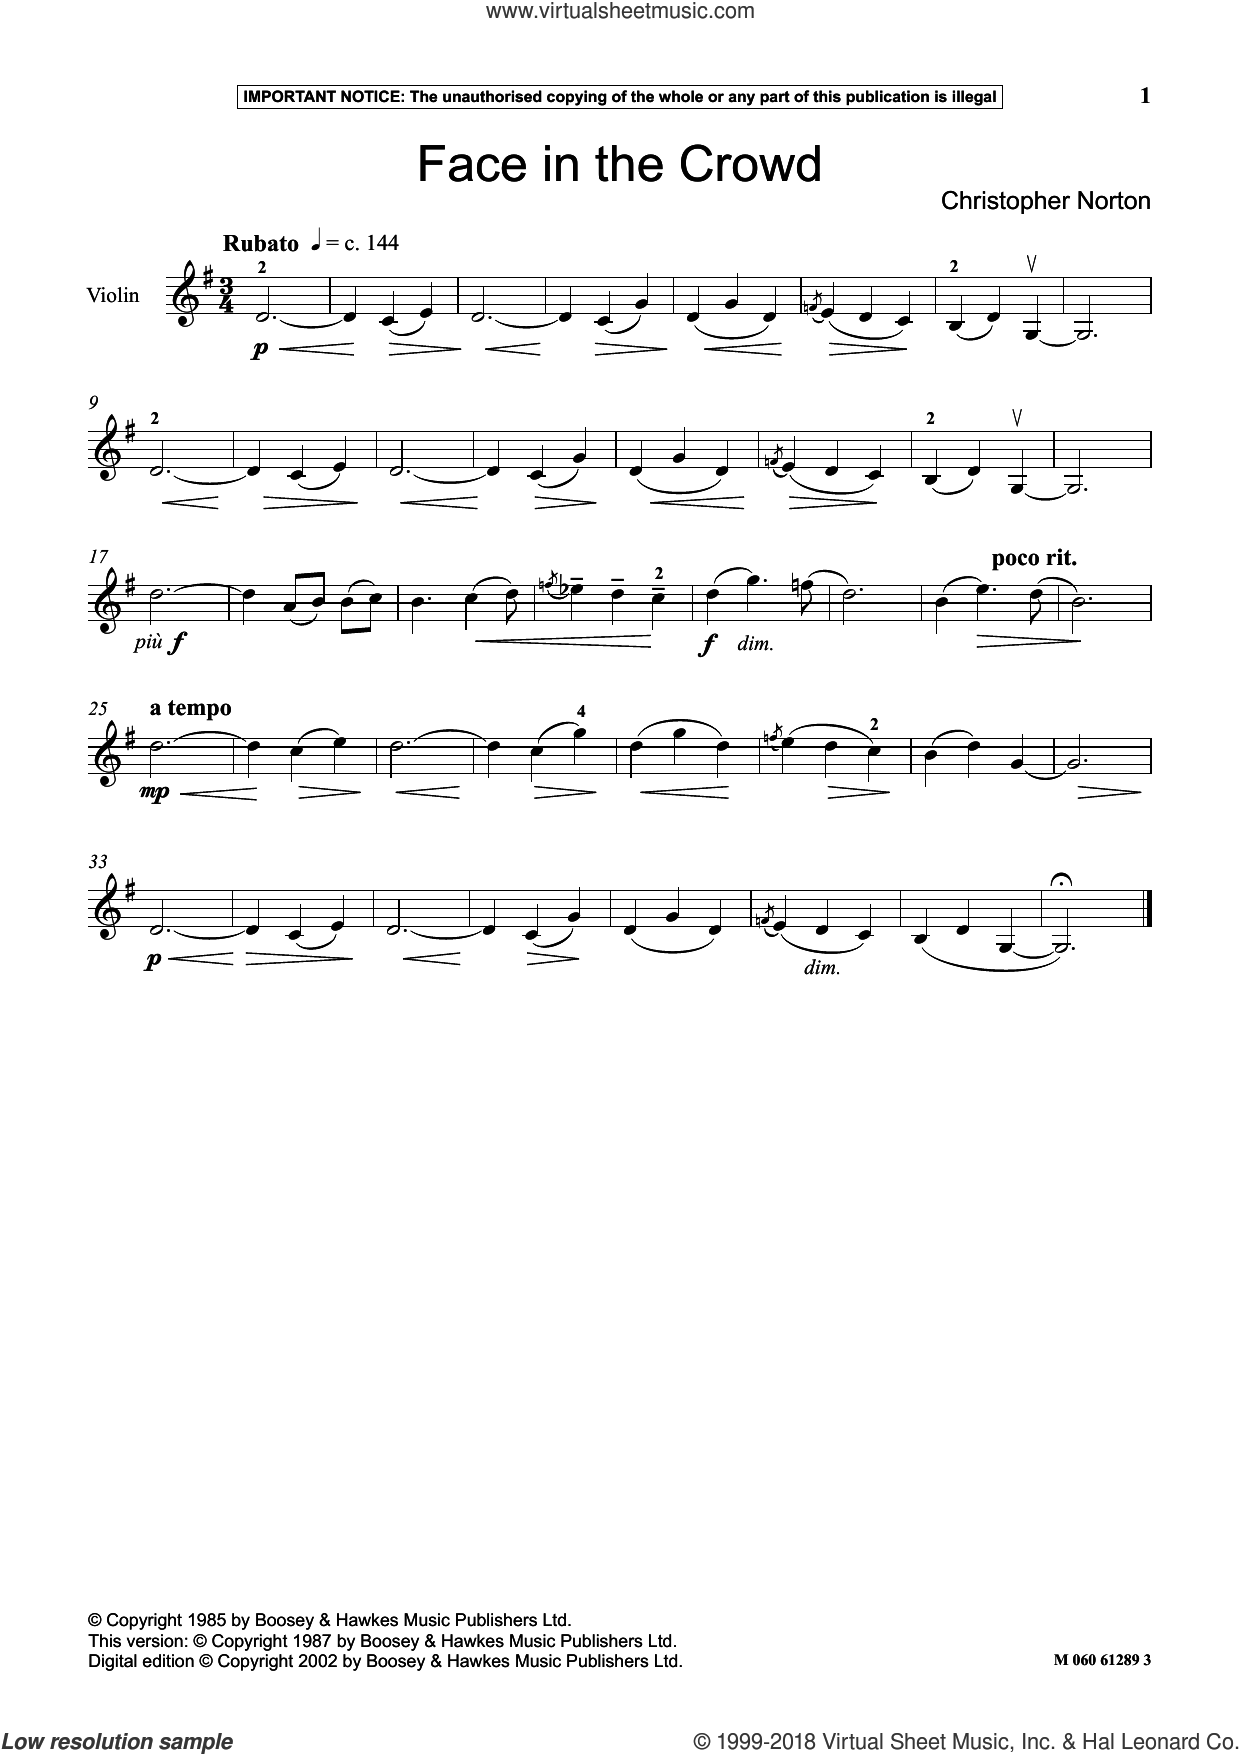 Face In The Crowd sheet music for violin solo by Christopher Norton, classical score, intermediate skill level